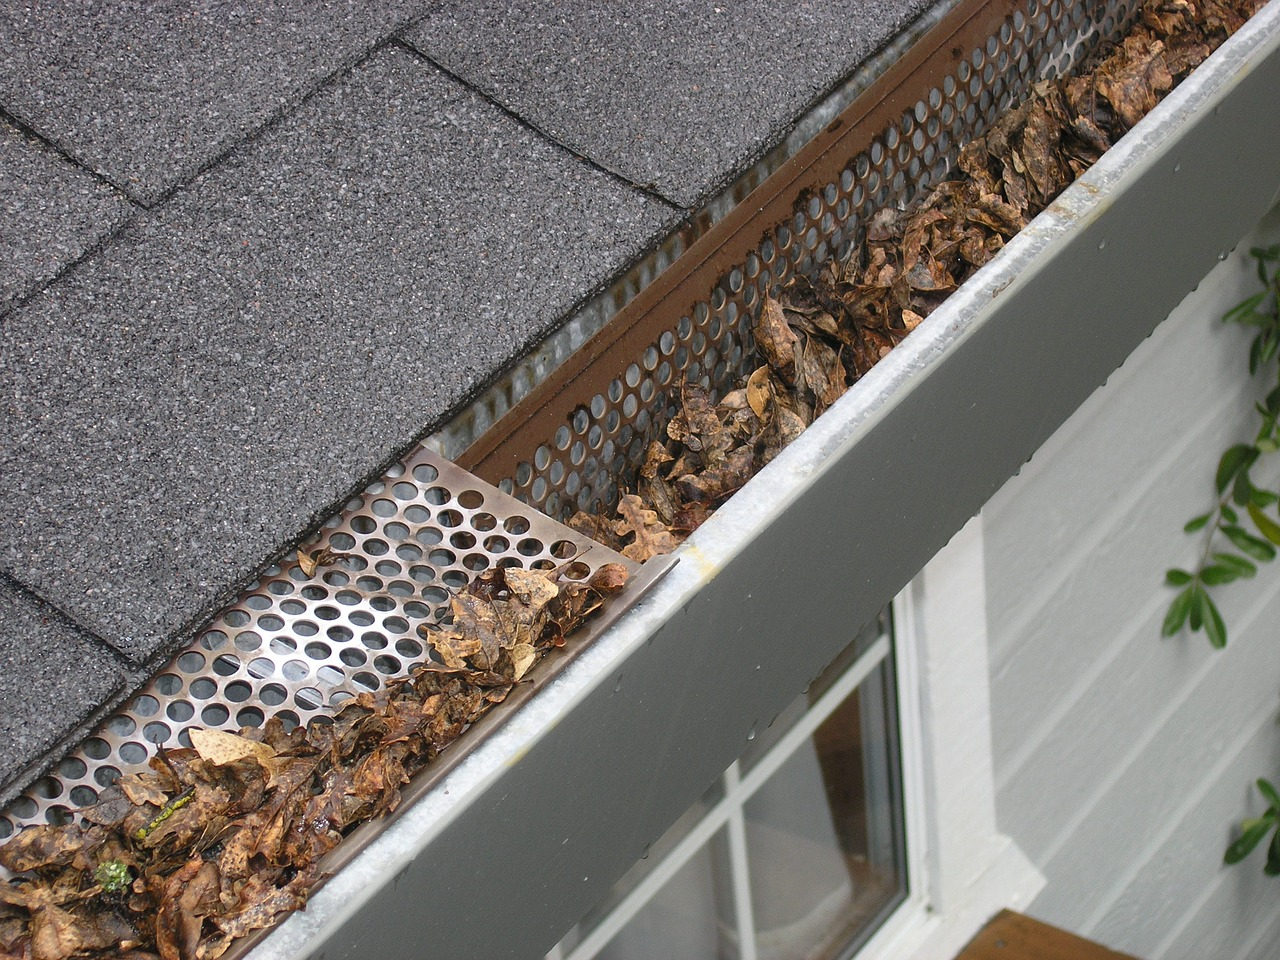 gutter cleaning services hillassistance landscaping llc